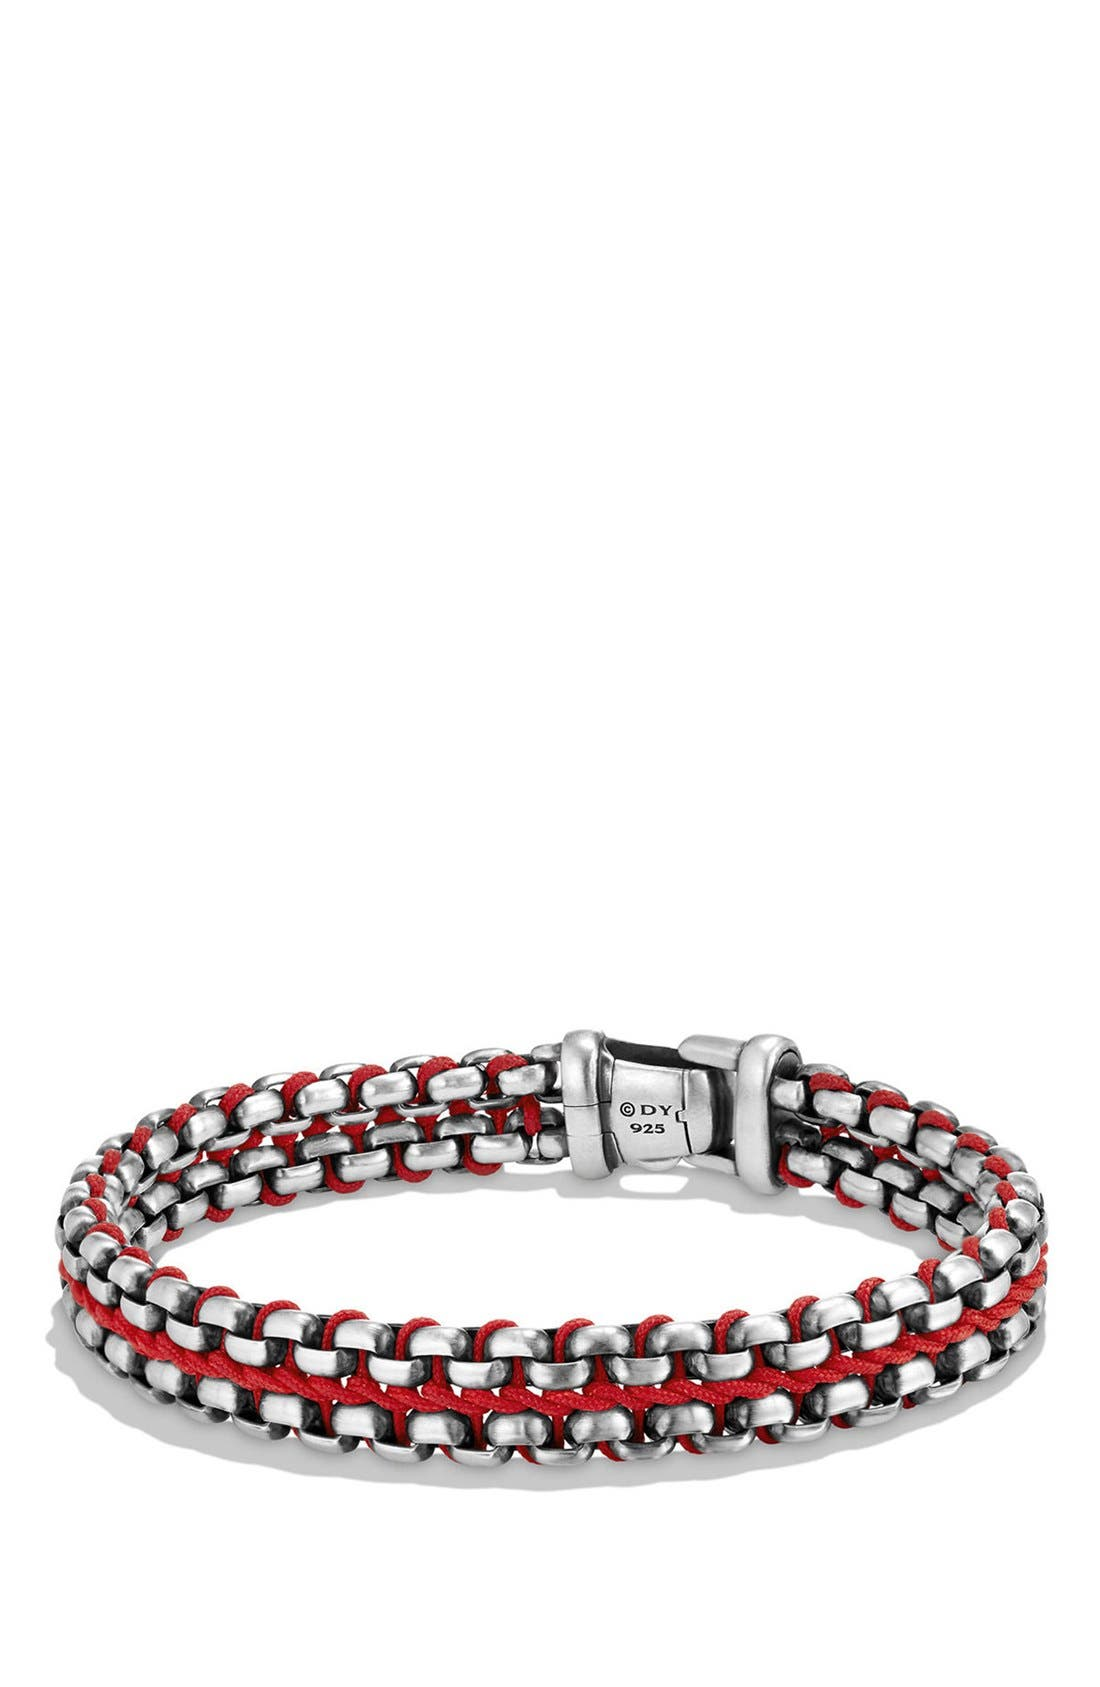 Main Image - David Yurman 'Chain' Woven Box Chain Bracelet